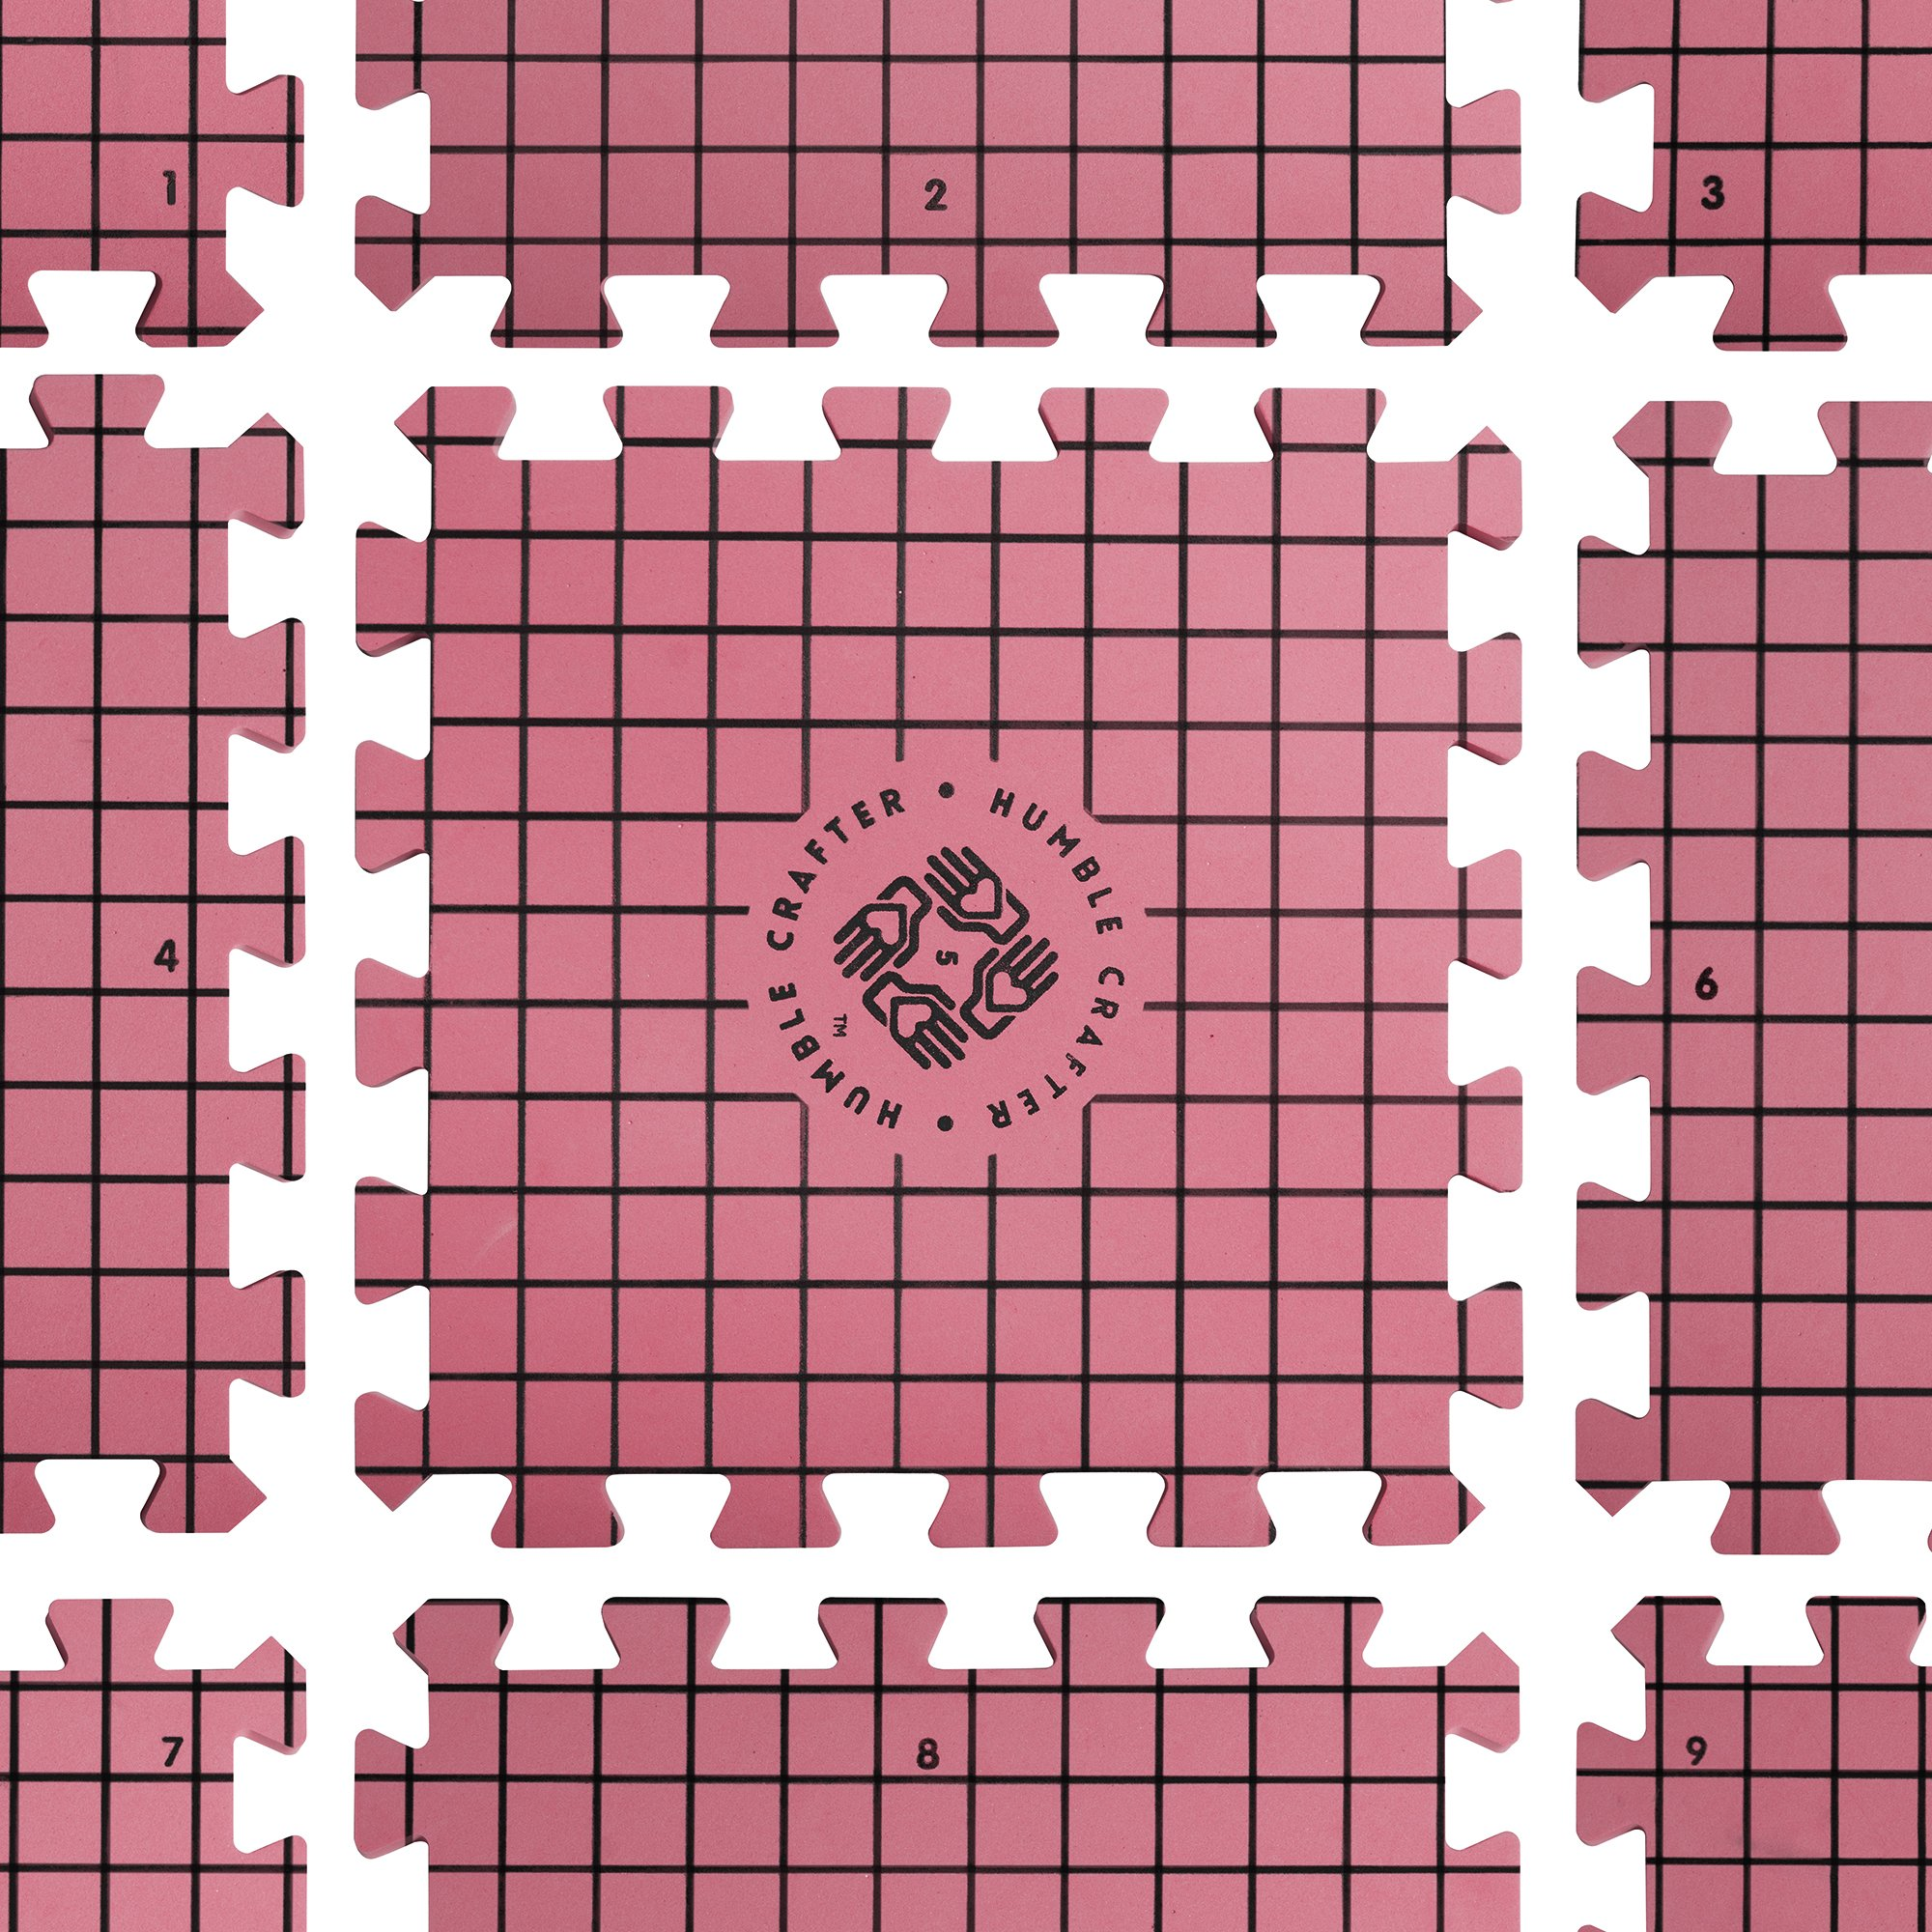 Blocking Mats for Knitting | Extra Thick - with Grids Guaranteed to Align - Includes 100 Stainless Steel T-Pins and 60-Inch Measure Tape... by Humble Crafter (Image #3)